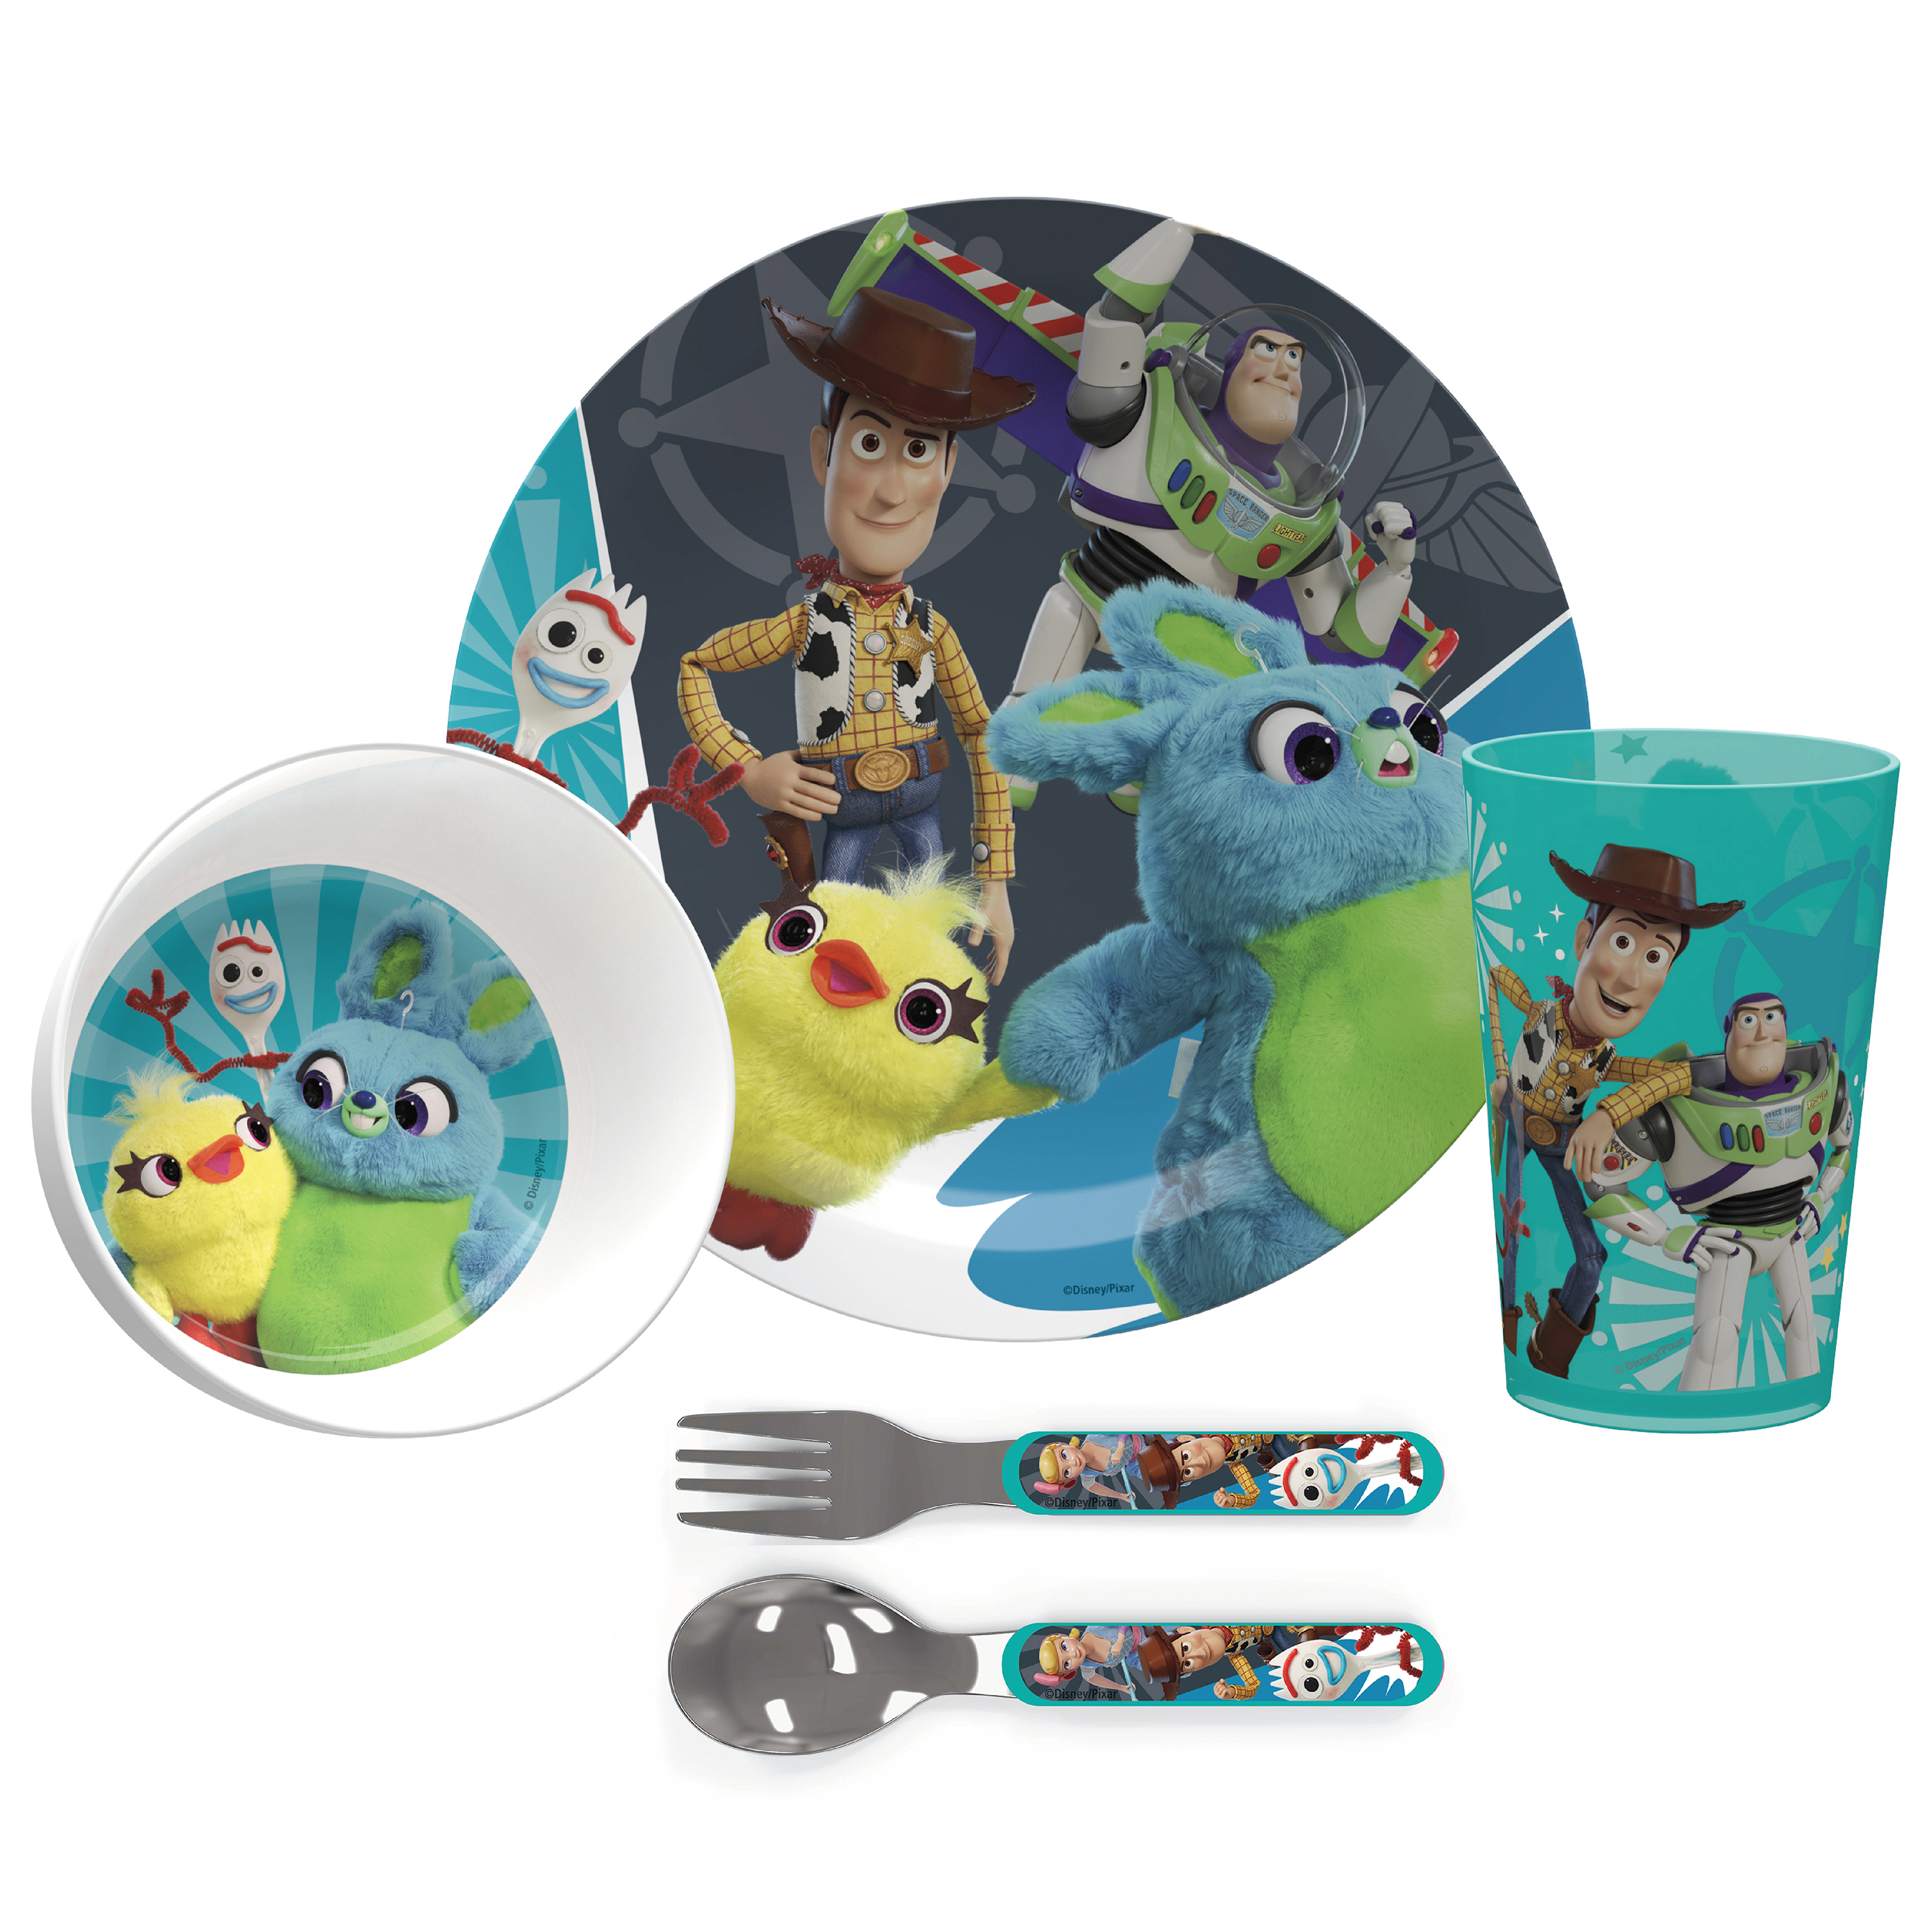 Disney Pixar Dinnerware Set, Woody, Buzz and Friends, 5-piece set slideshow image 2